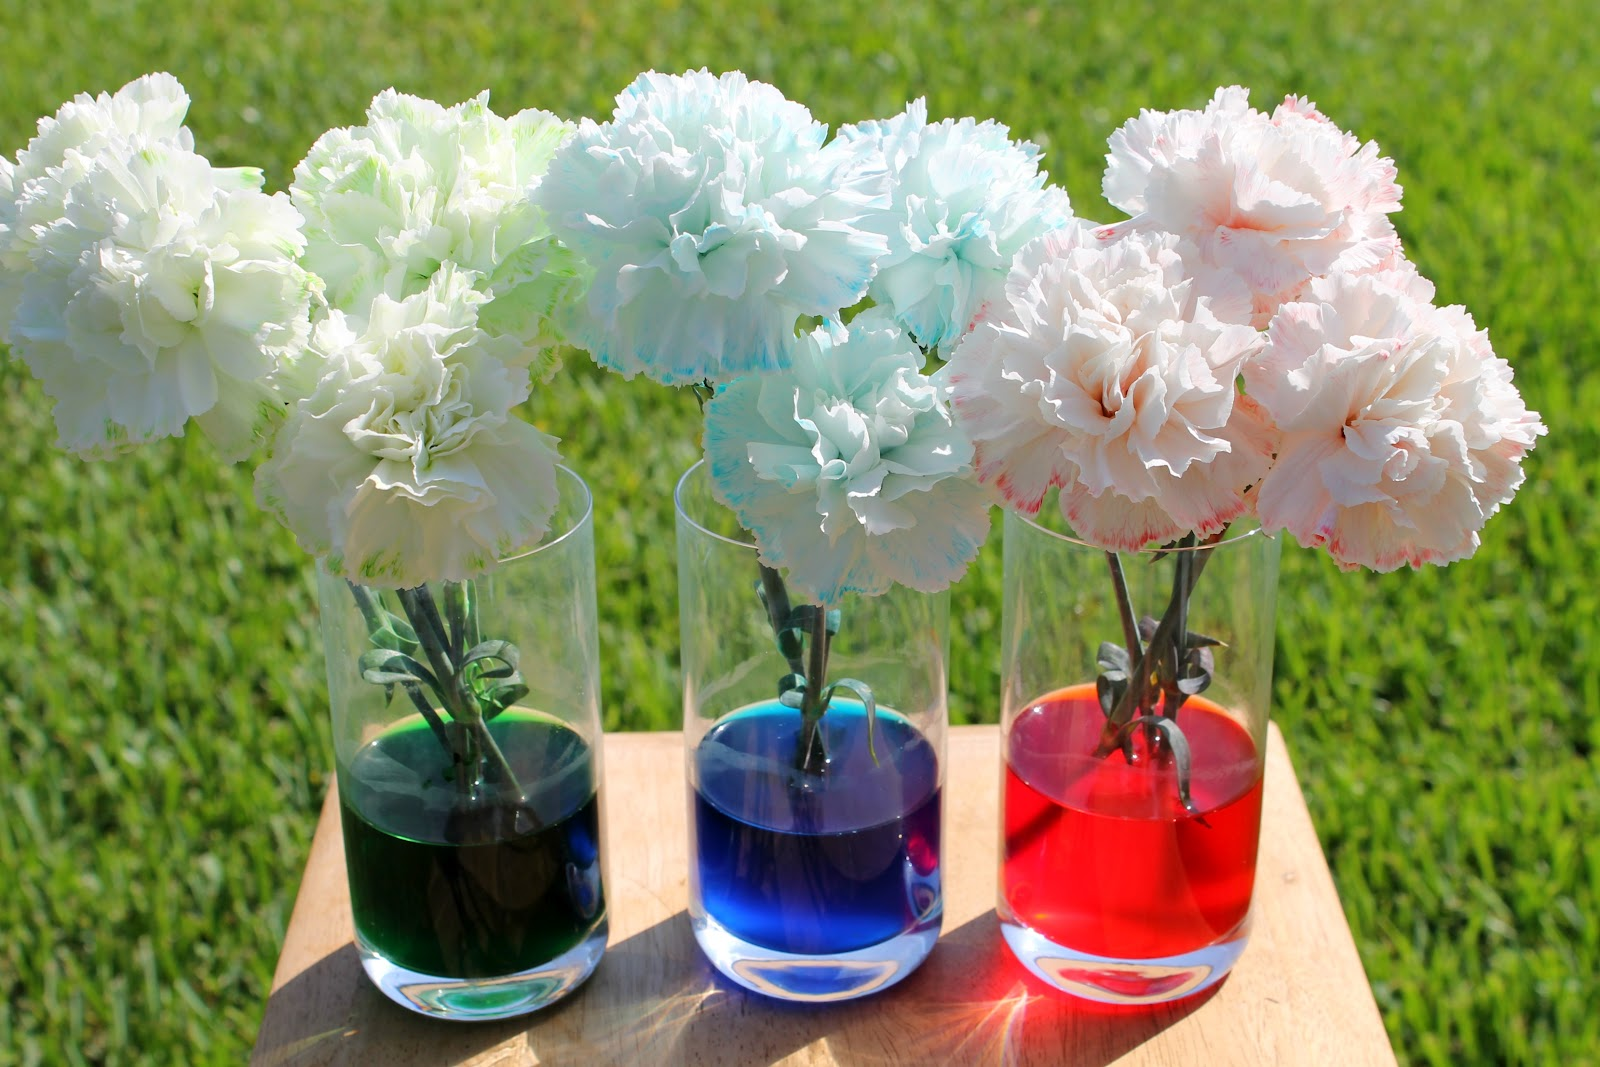 How To Make Food Coloring